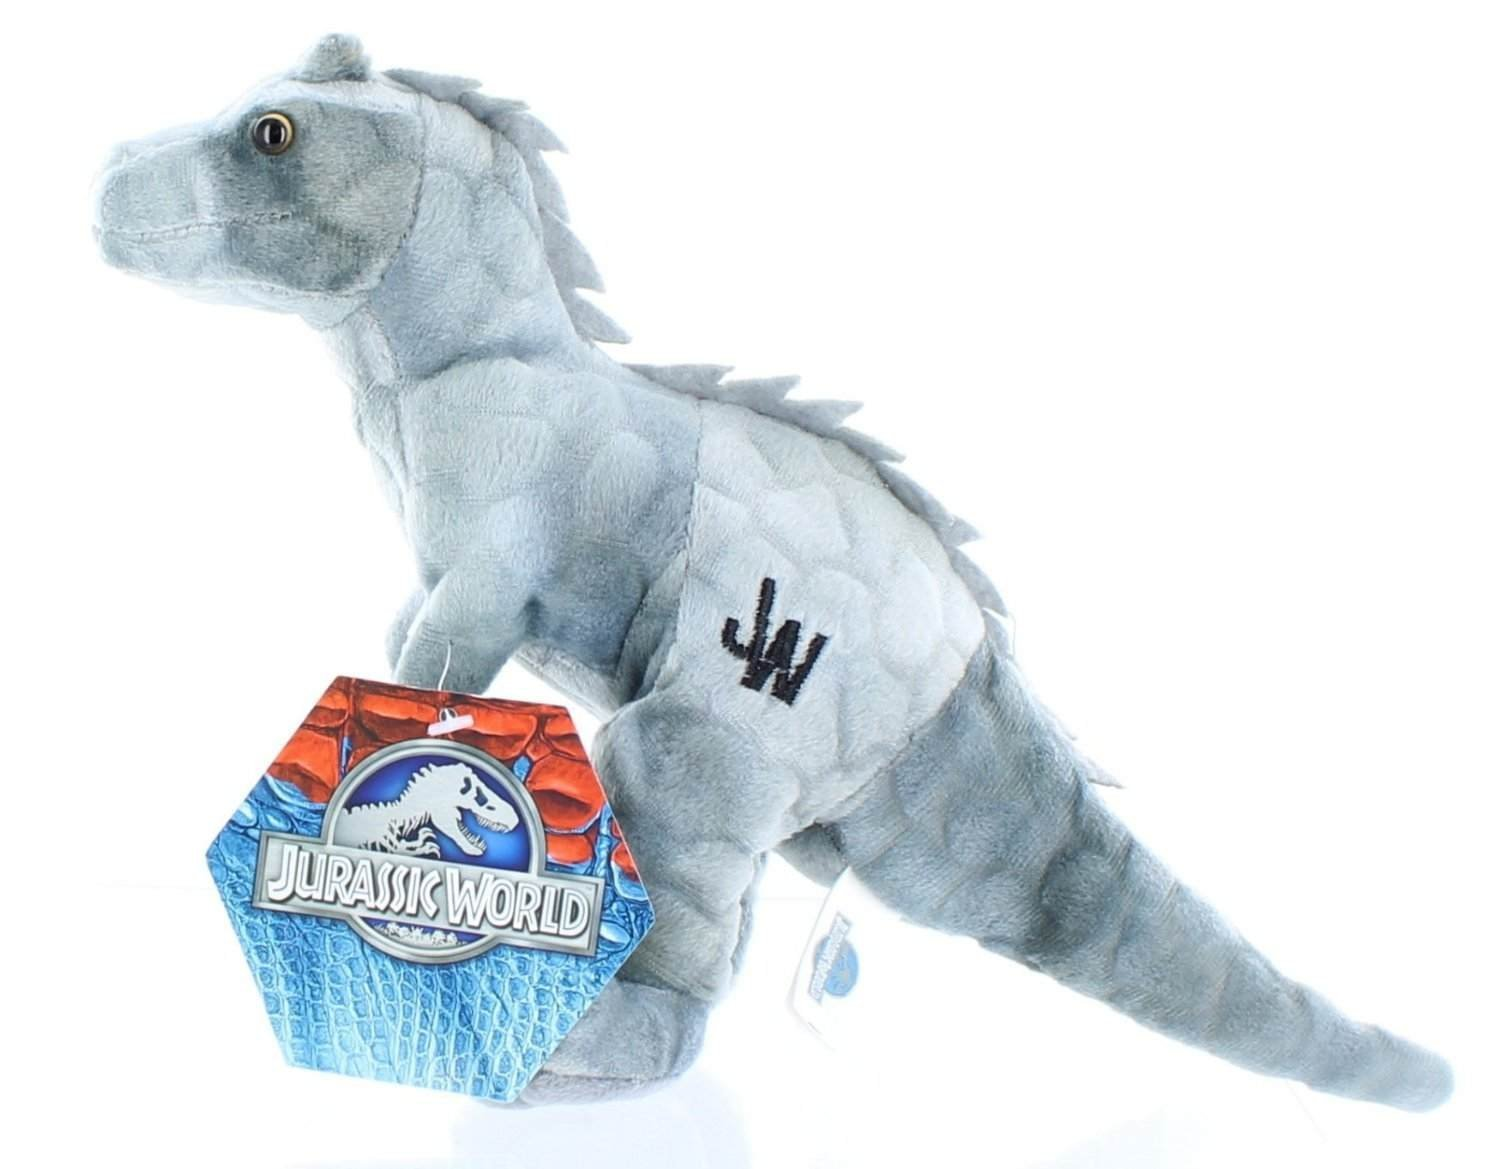 Amazon.com : Jurassic World Velociraptor 7